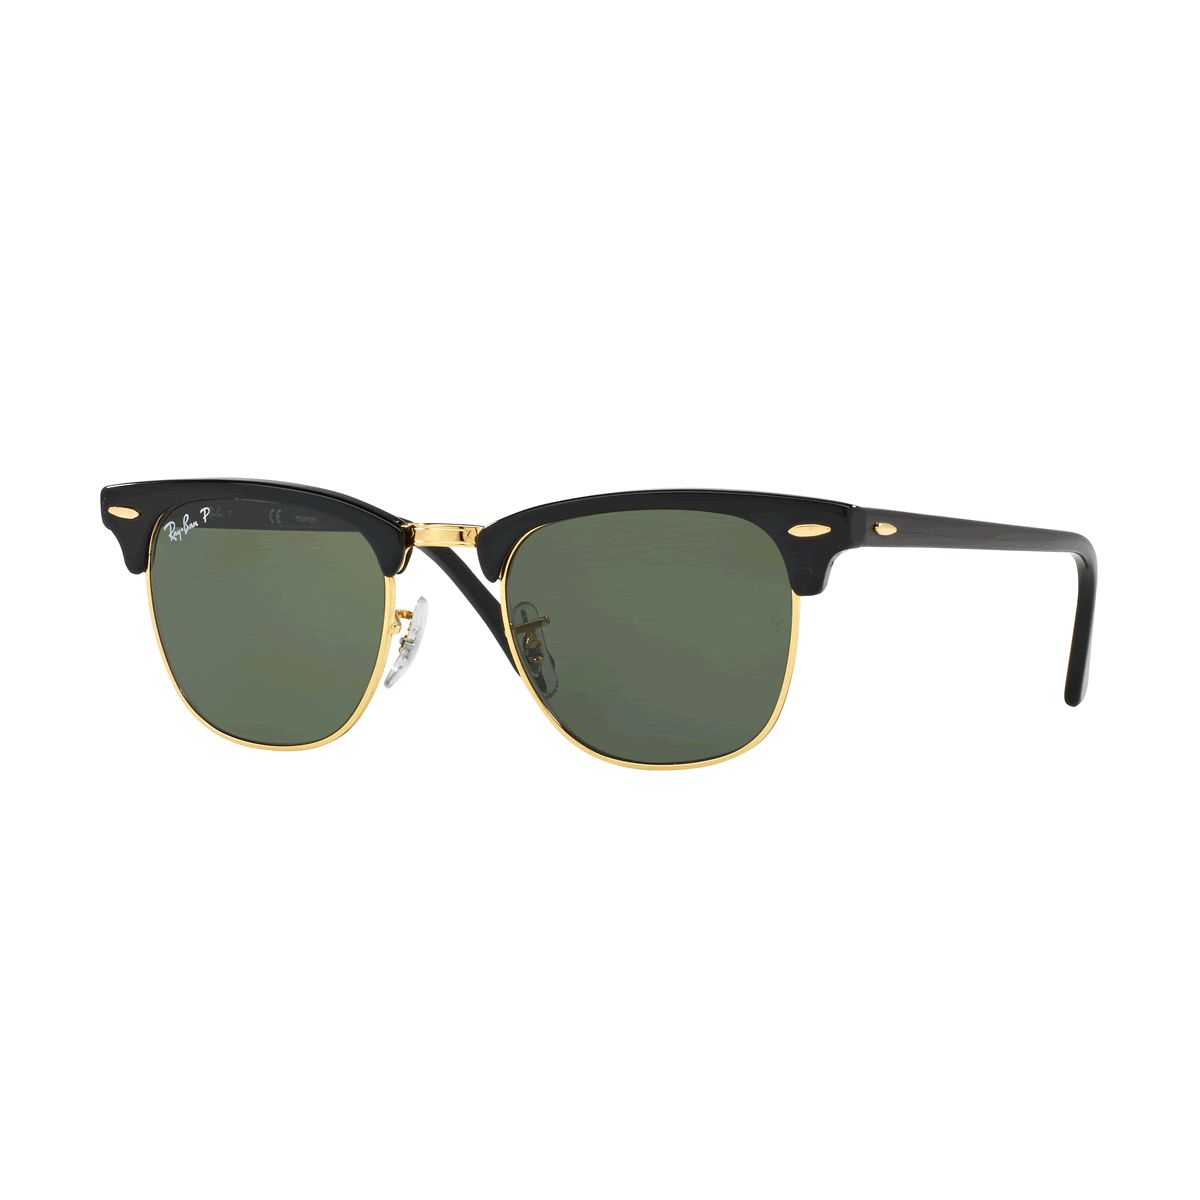 9c79cc168c2 Ray-Ban Sunglasses - Mens   Womens Ray-Bans - Macy s